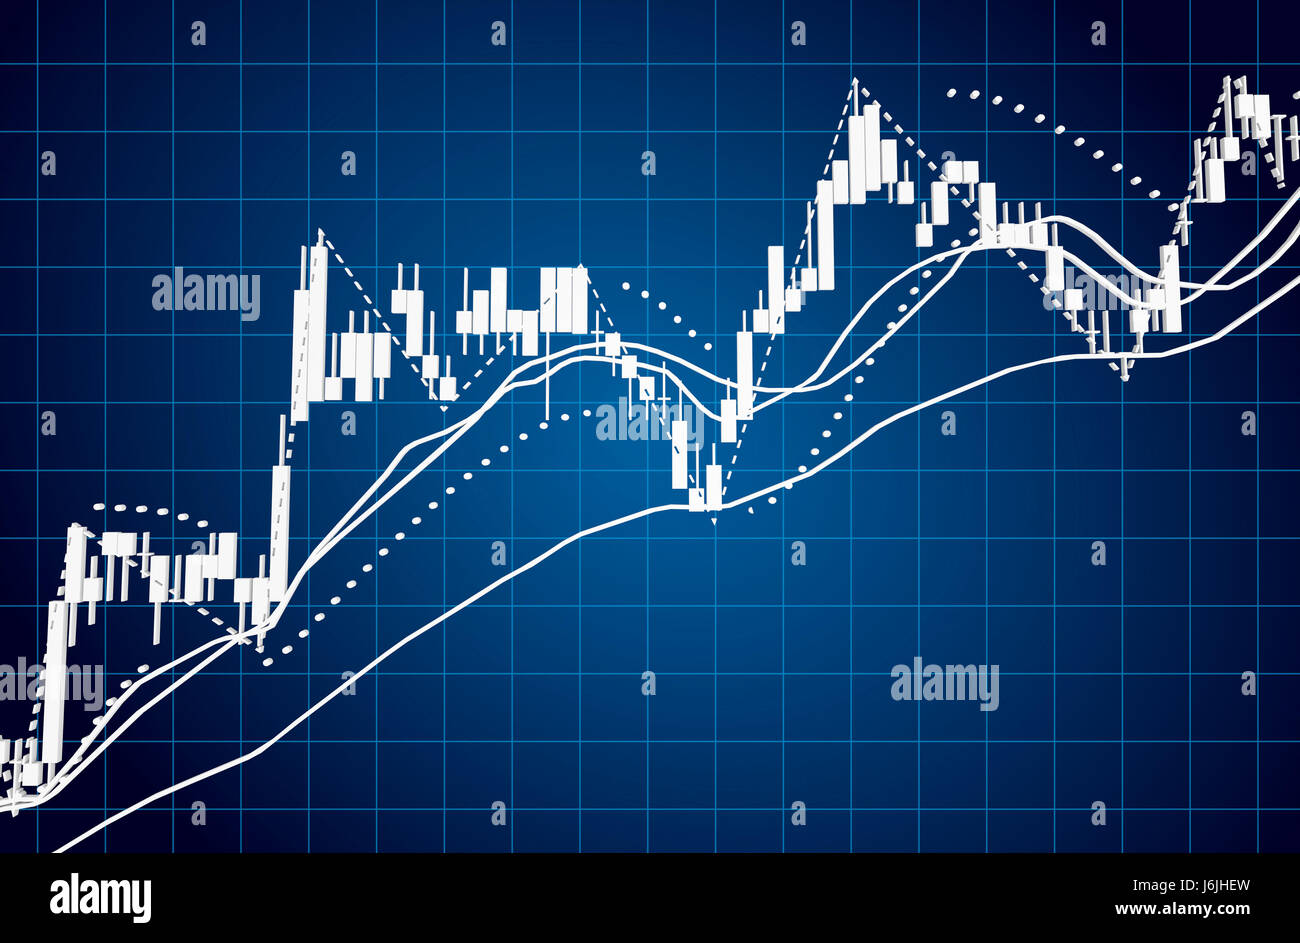 stock market charts and summary info for making trading with stock